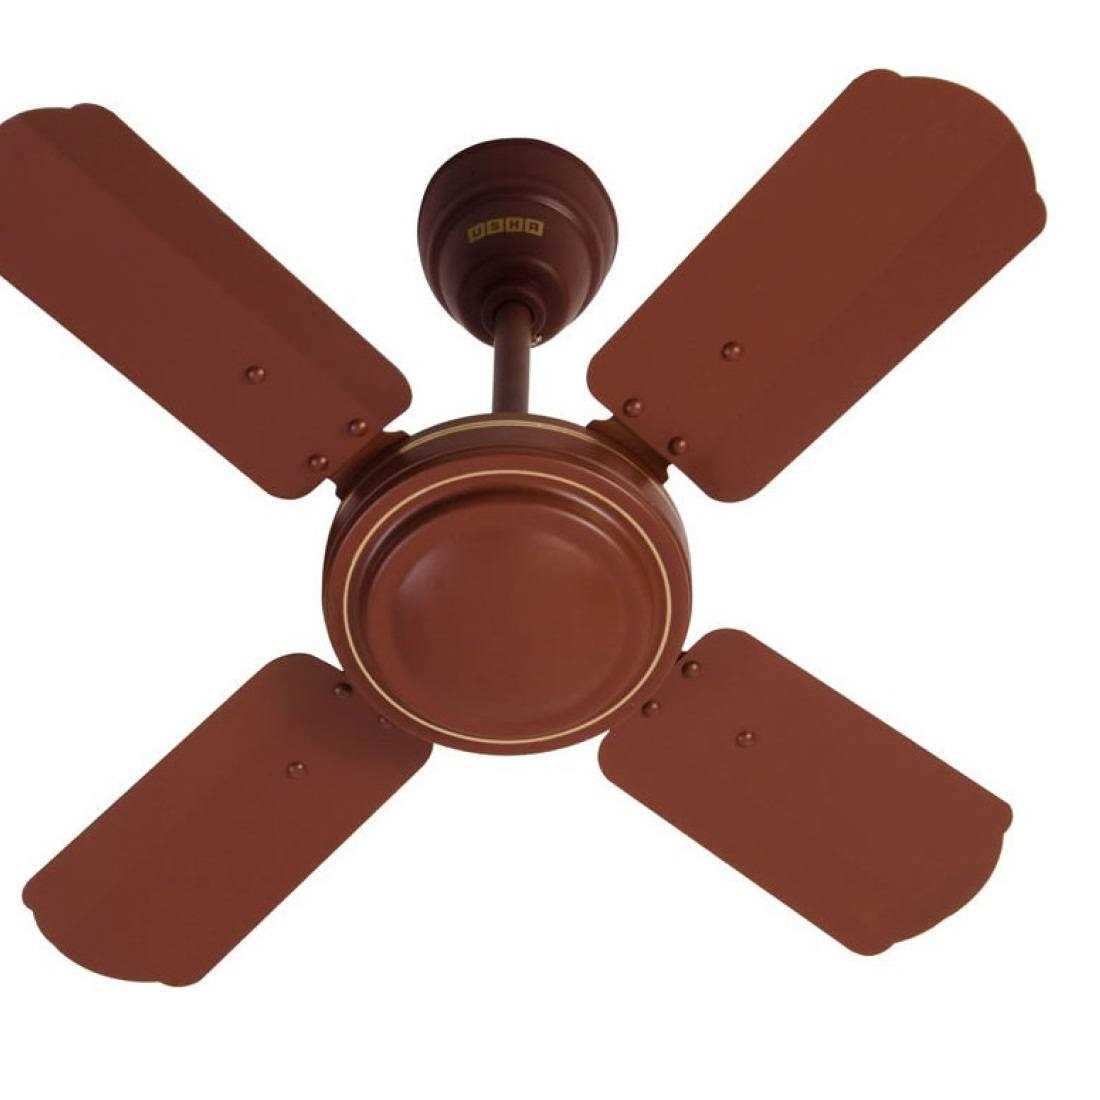 Usha striker 600mm 4 blade ceiling fan price 14 feb 2018 usha striker 600mm 4 blade ceiling fan price 14 feb 2018 striker reviews and specifications mozeypictures Gallery